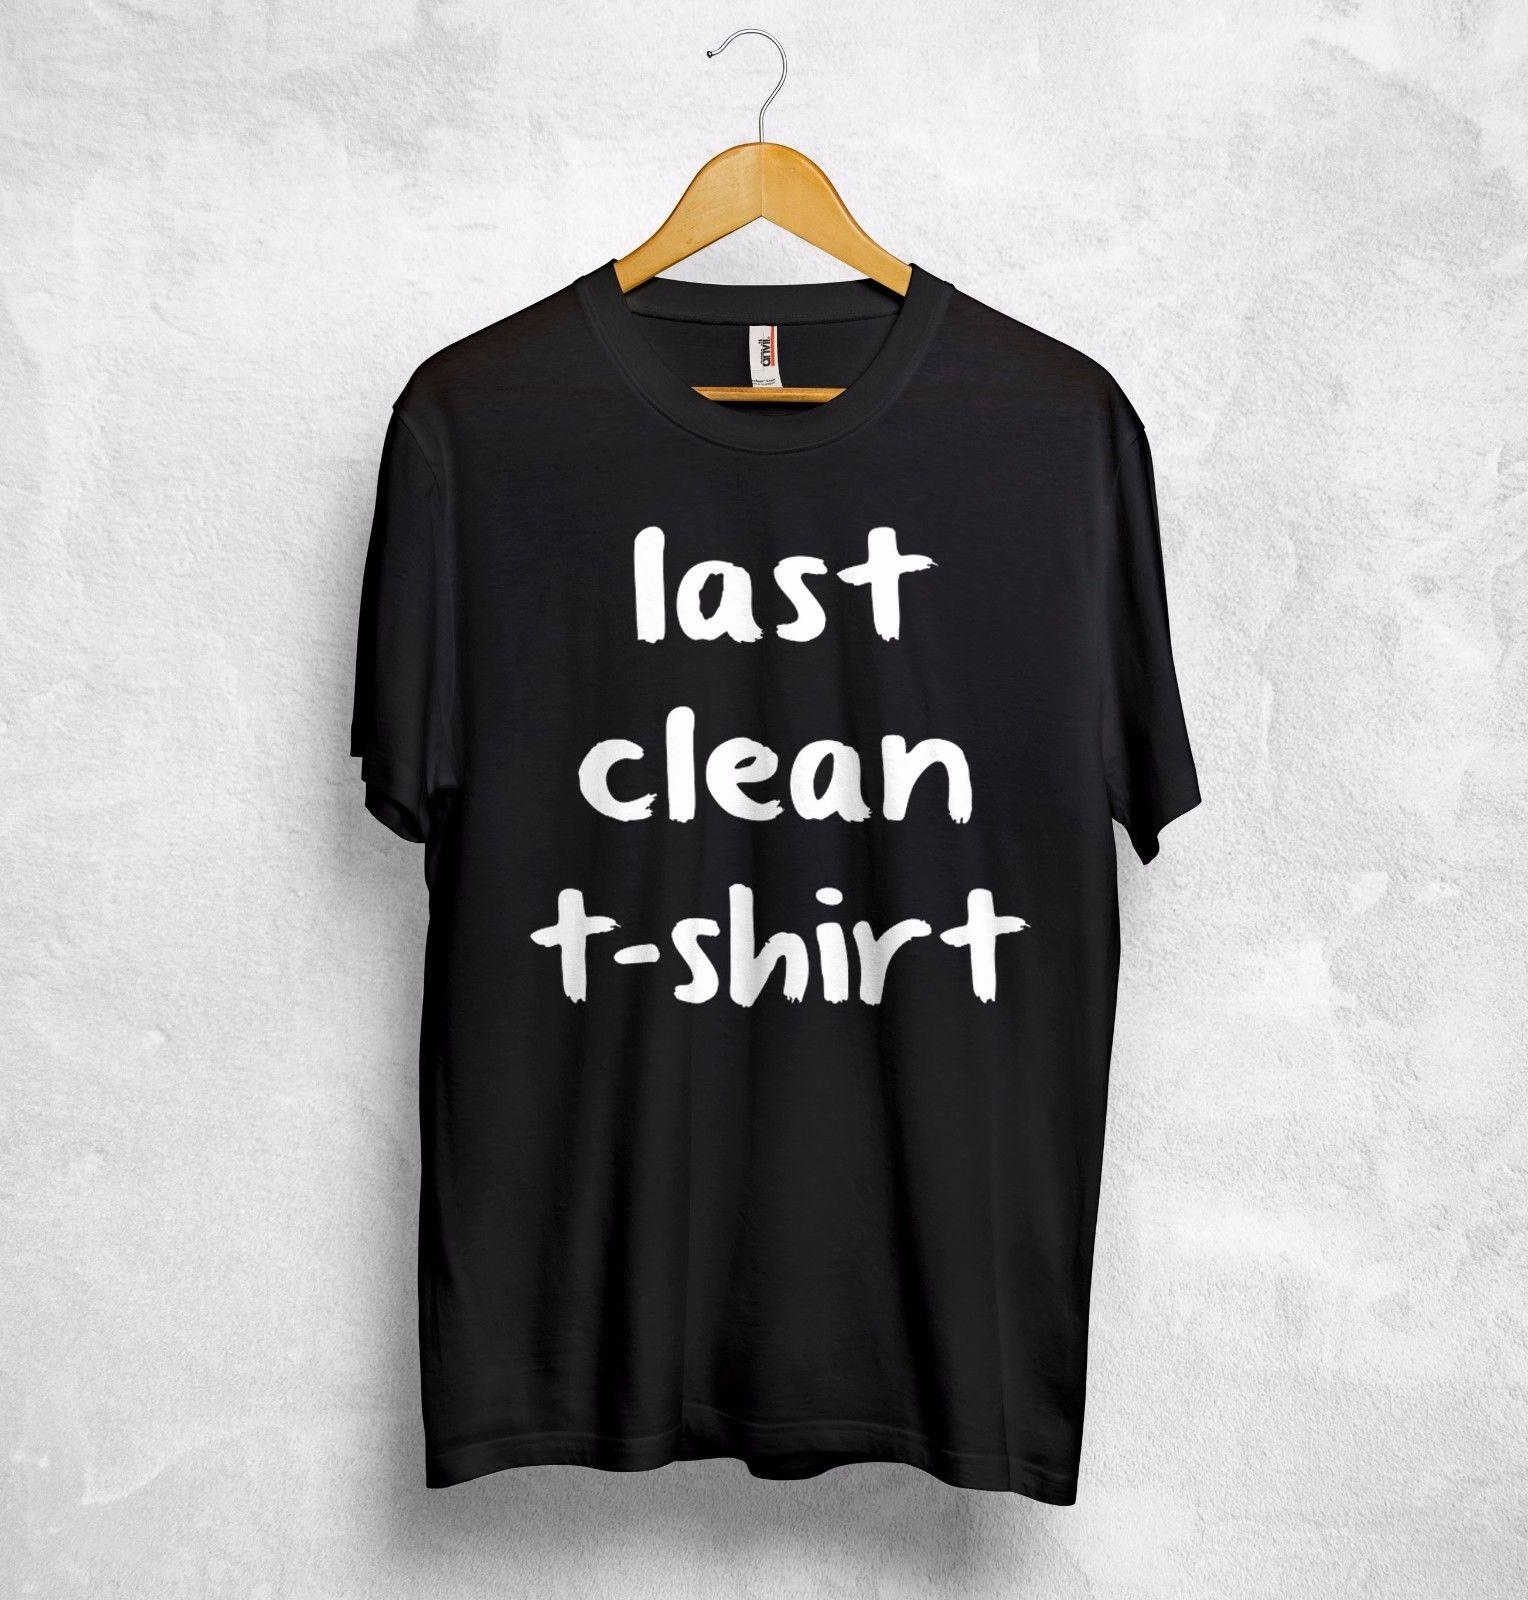 5d46de9ba Last Clean T Shirt Top Funny Gift Husband Hubby Boyfriend Sarcasm Fashion  Girl Adult Chinese Style Mens Cotton T Shirt Design Tee Shirts T Shirt Funny  From ...